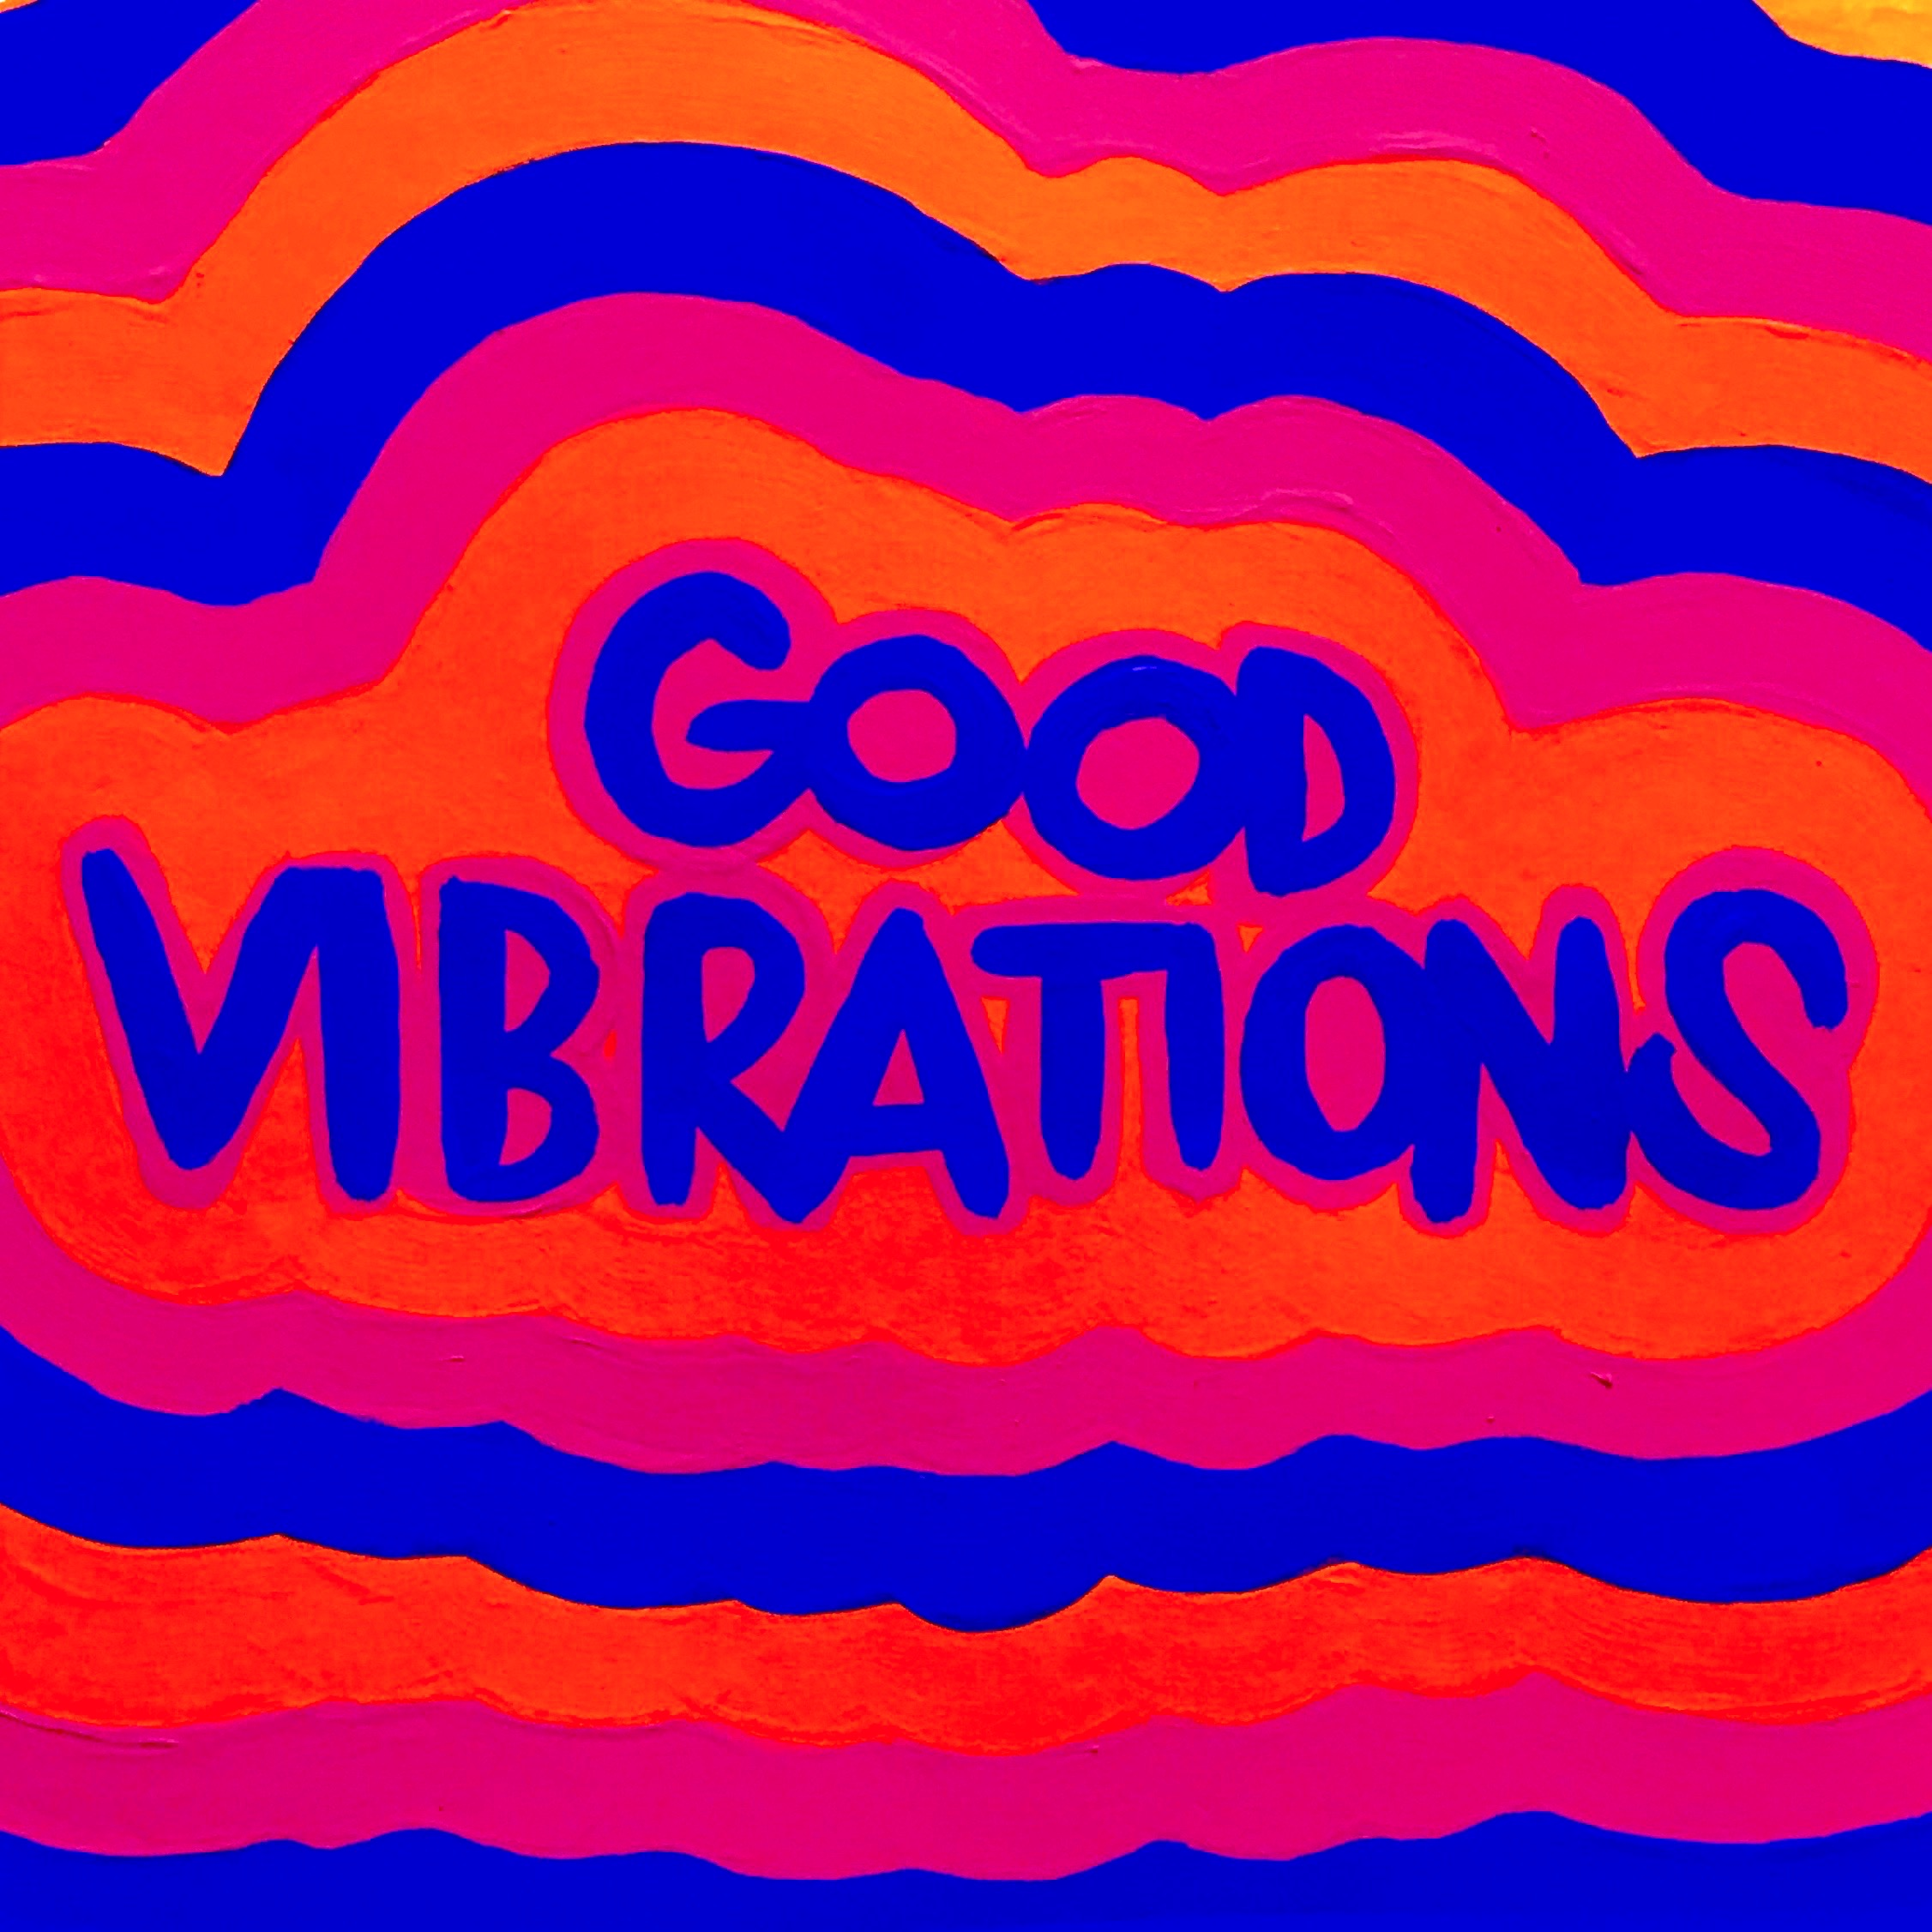 Good Vibrations by Carlie Foreman - LIVE 1st + 3rd Wed at 5pmAll electronica, from ambient and synth pop to heavy bass. Previous episodes here.